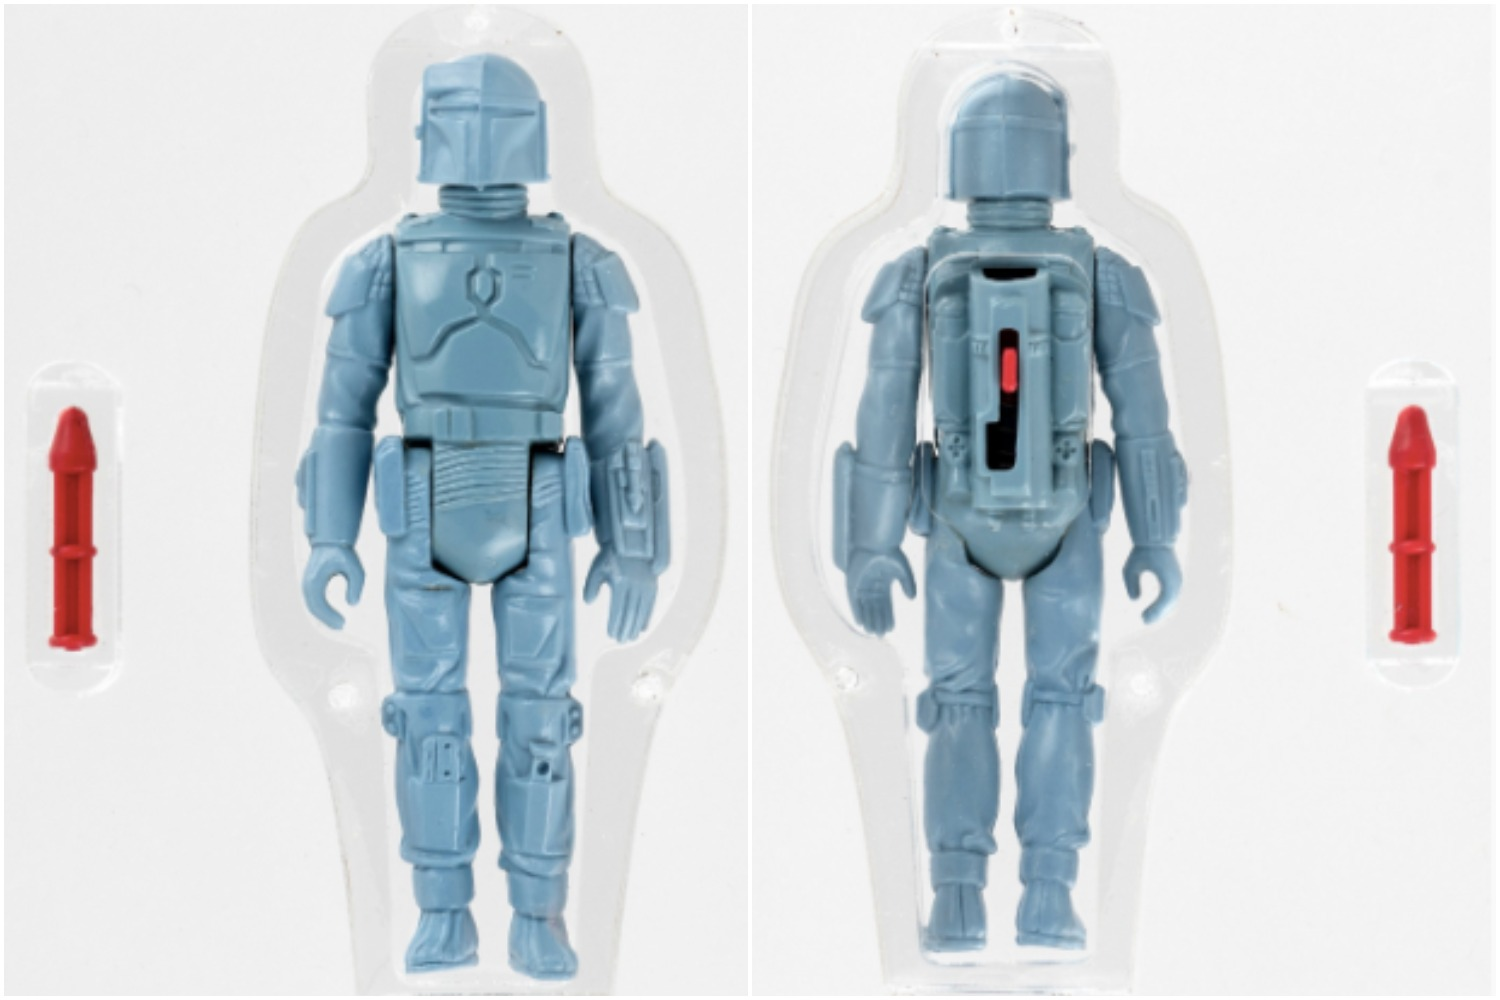 Star Wars toy sells for record-breaking $112,926 at central Pa. auction